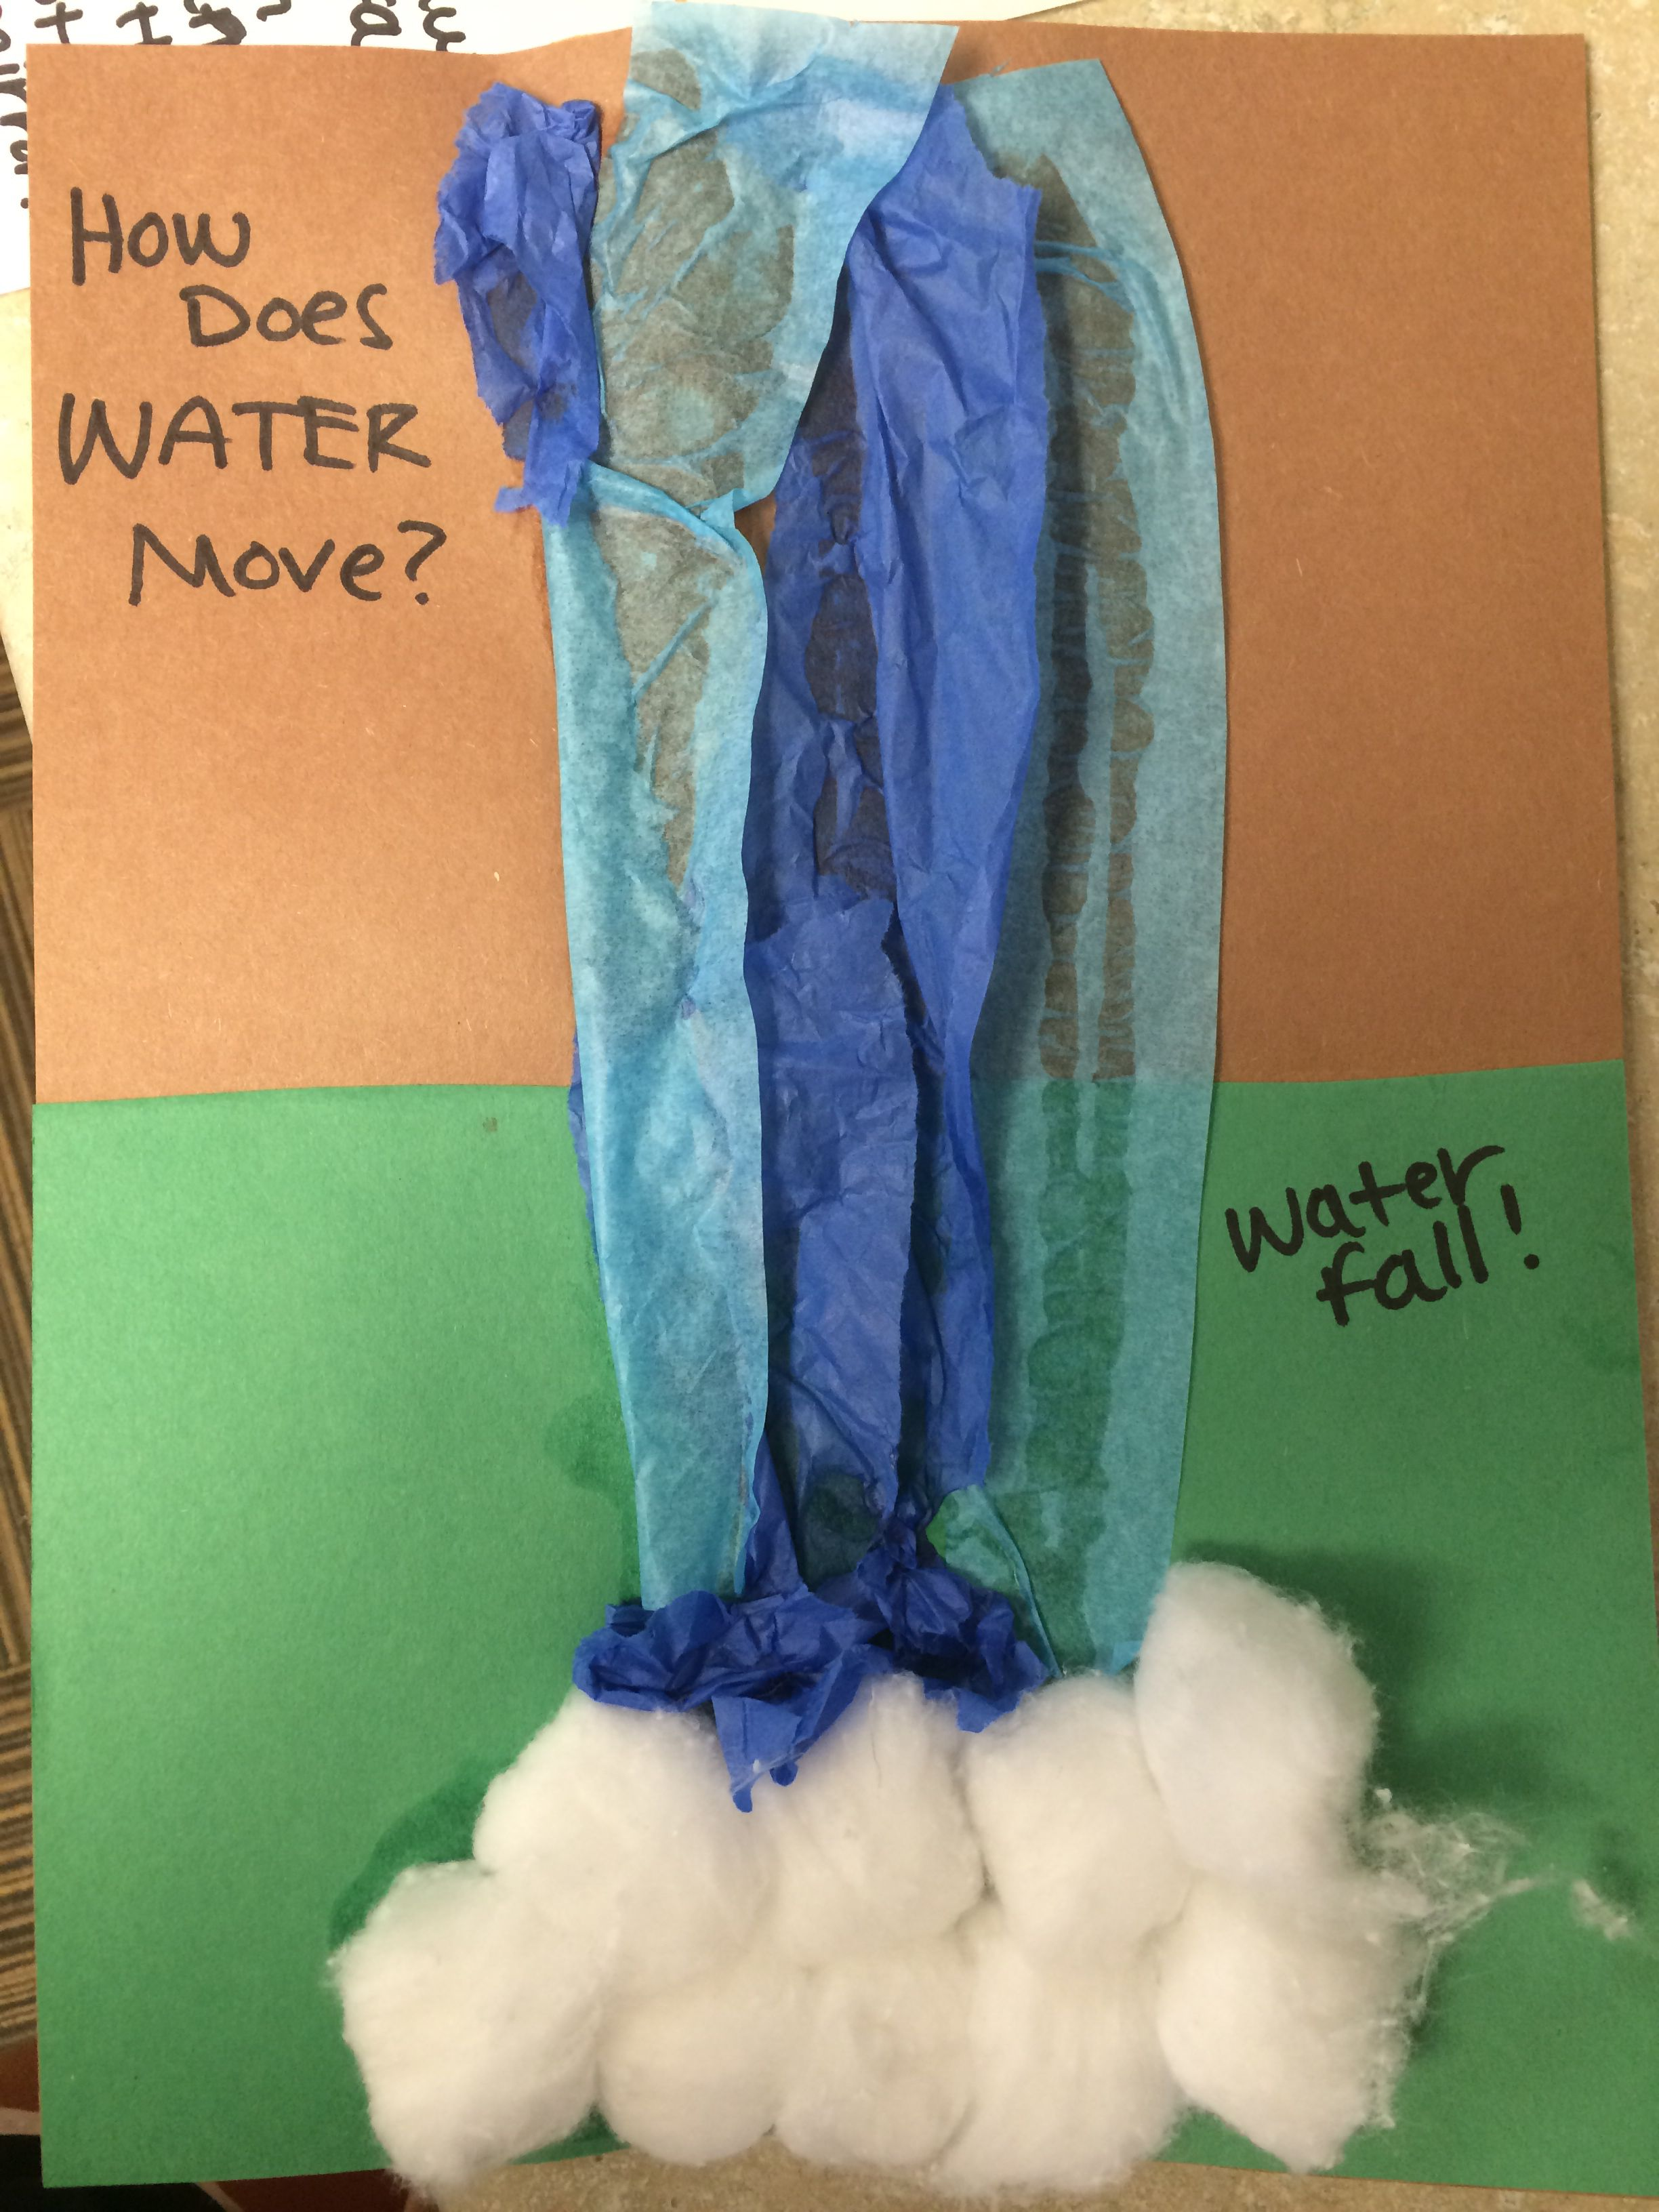 Waterfall craft: how water moves #preschool